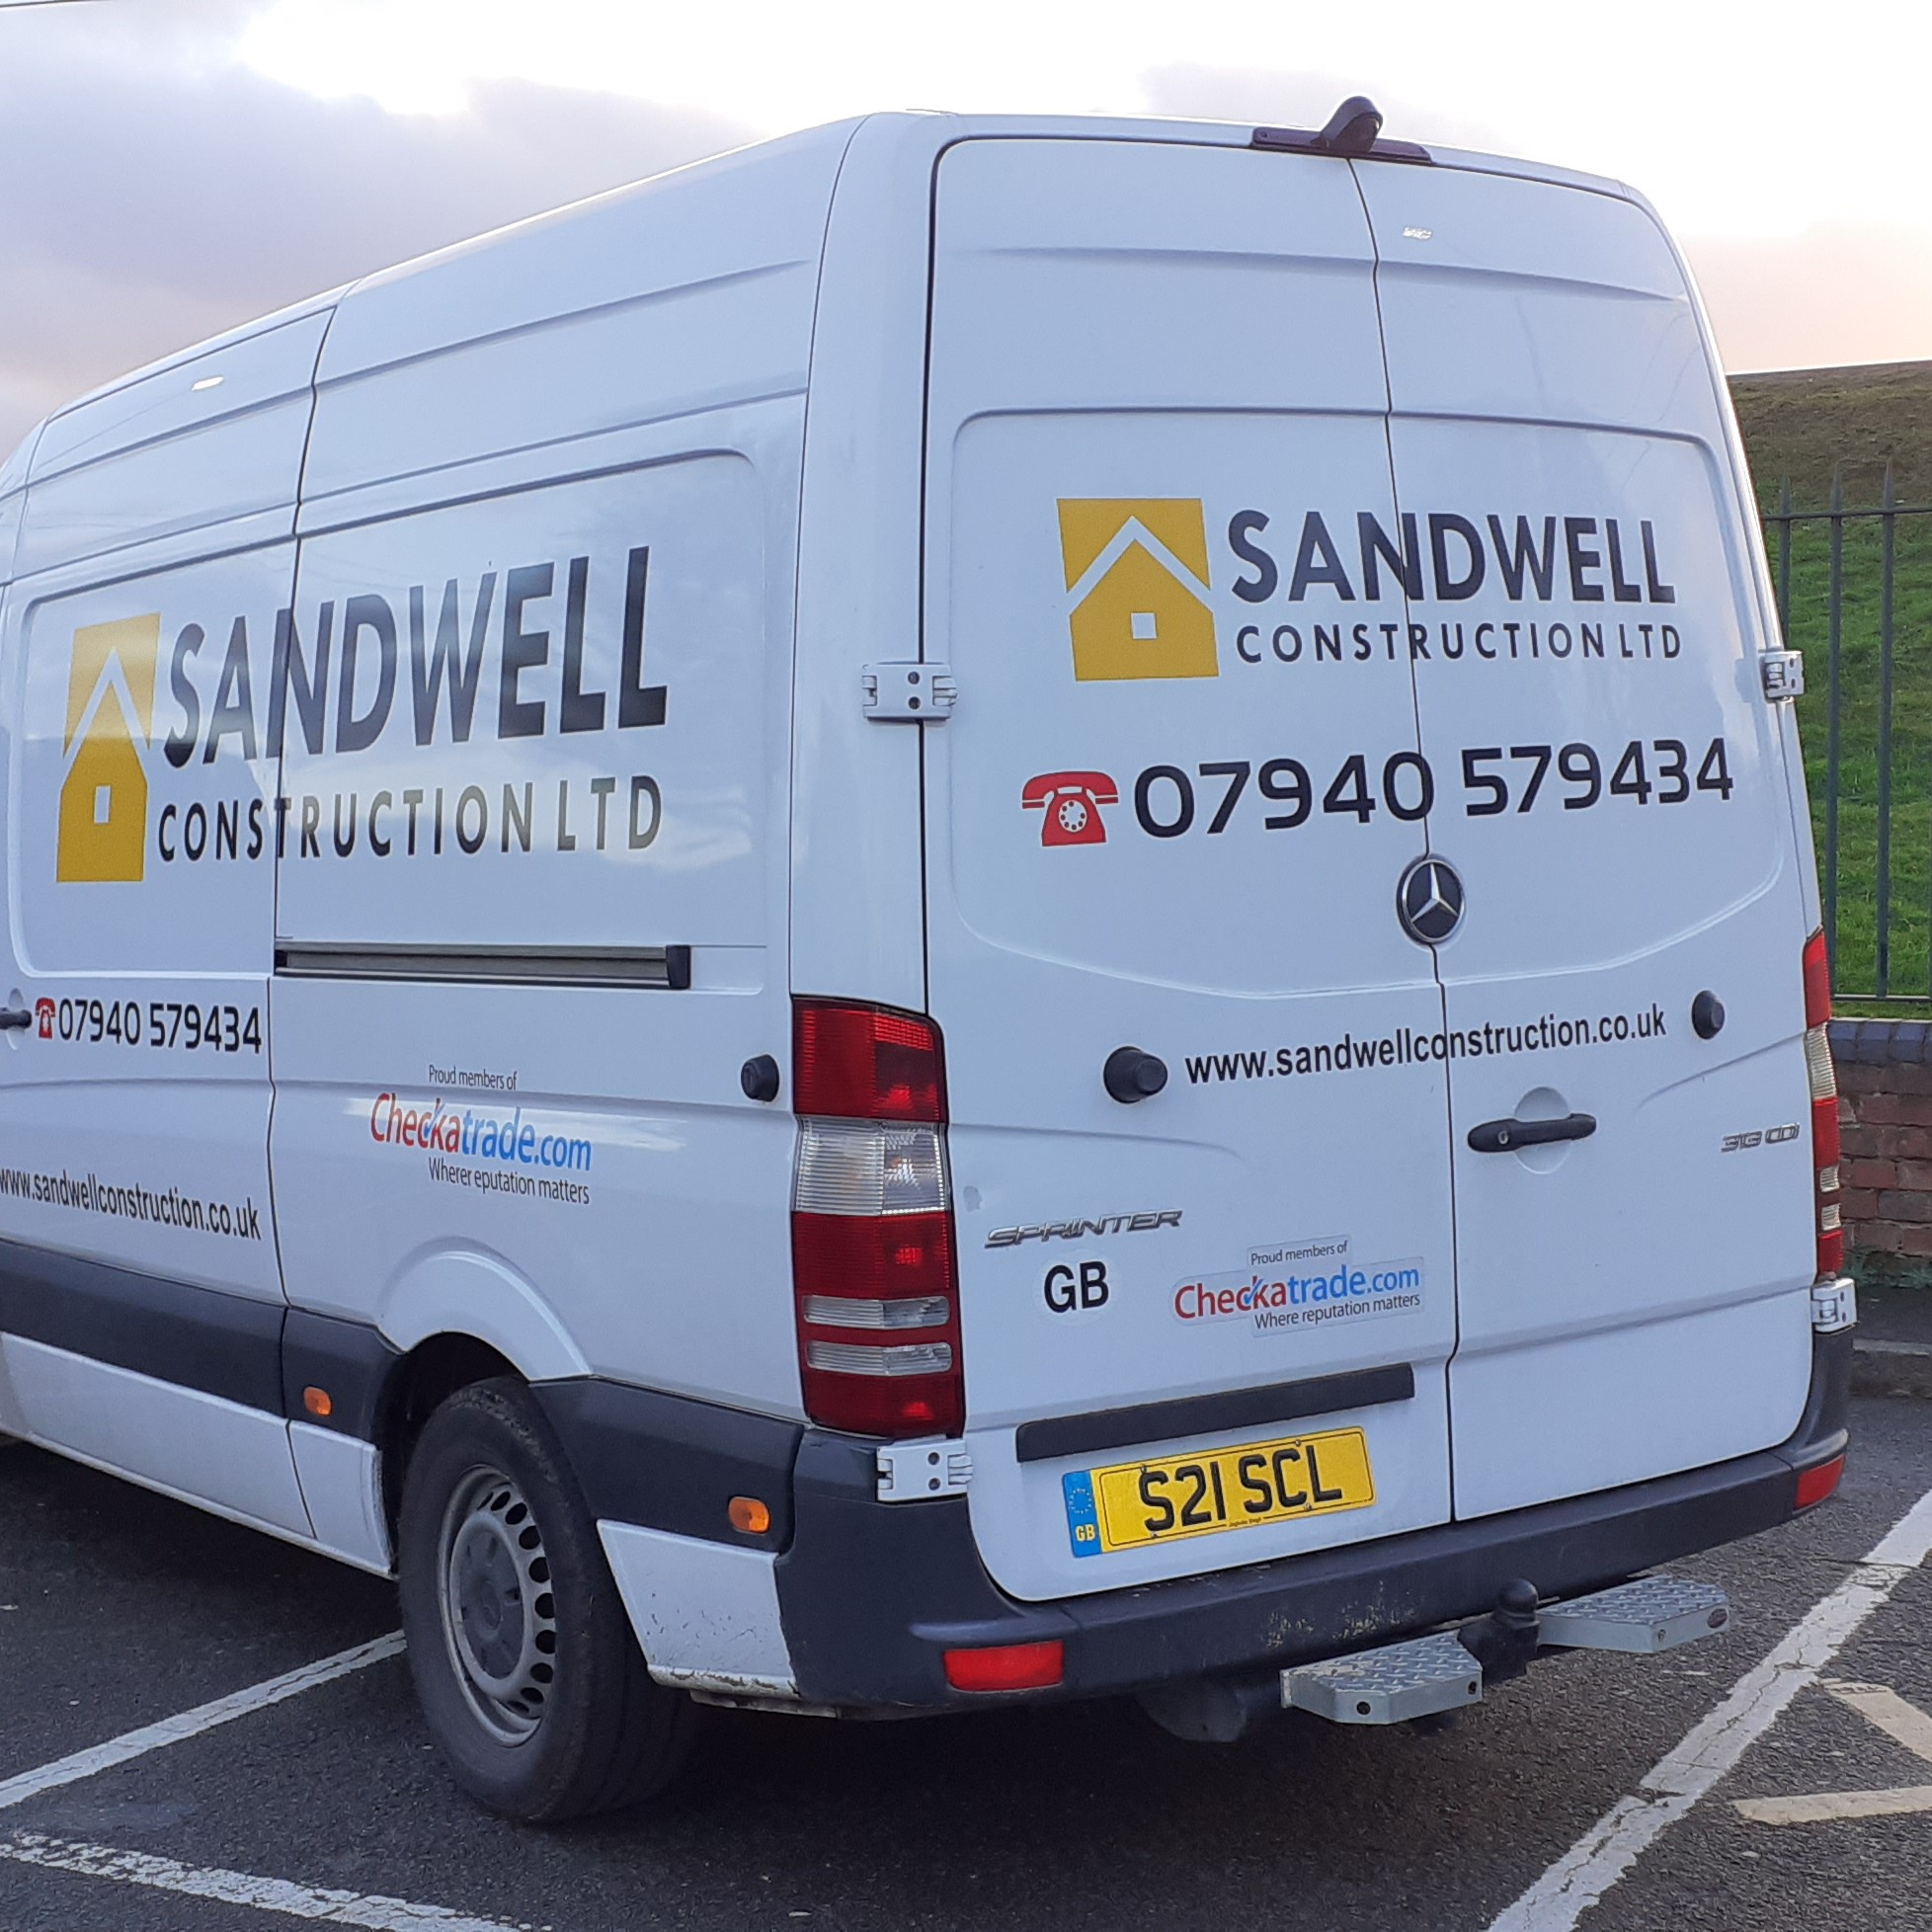 Sandwell Construction Ltd